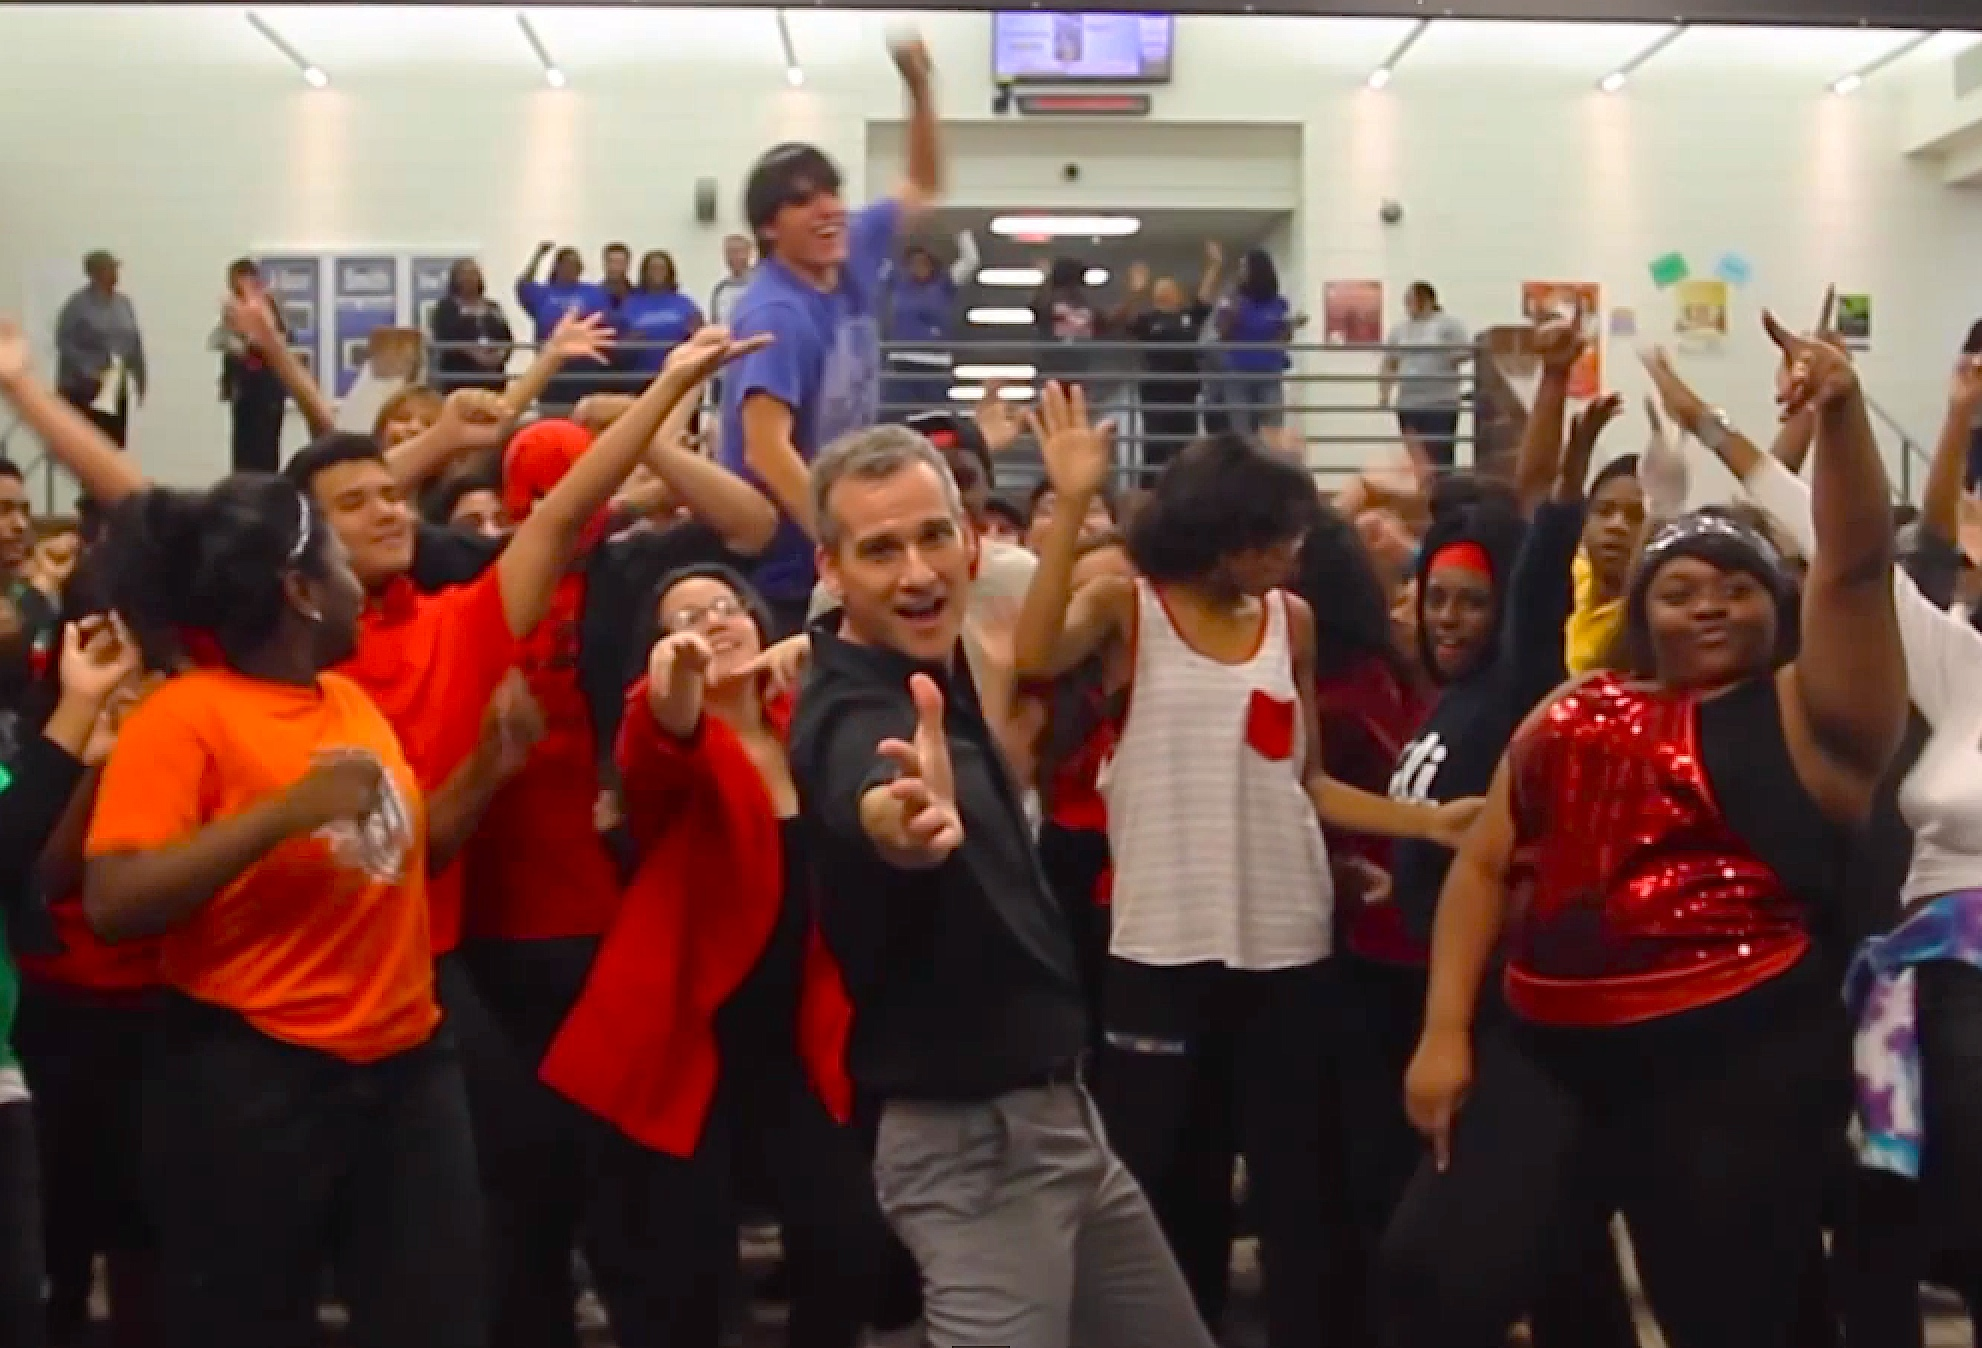 This High School is too hot! Watch them dance to 'Uptown Funk'